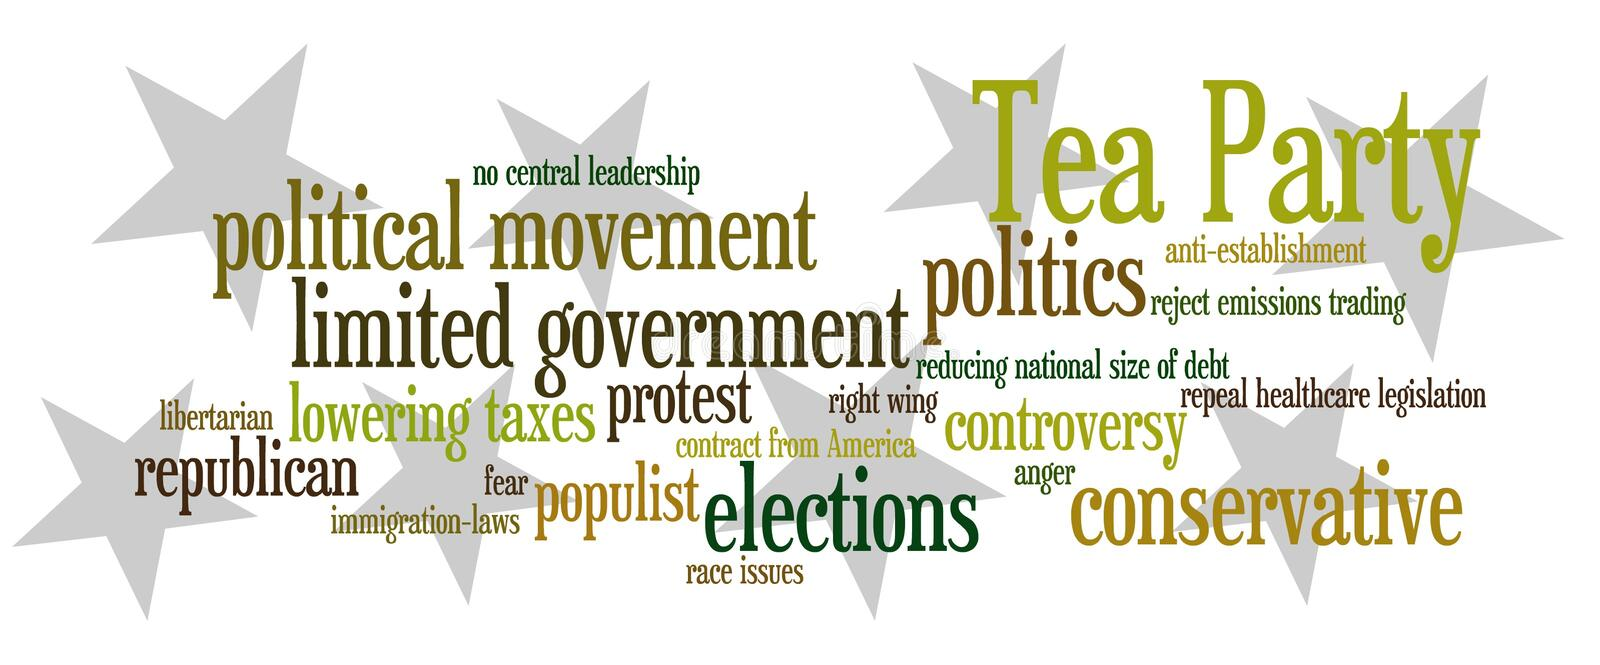 Tea Party. Important and relevant topics regarding the Tea Party, a recent political movement in the USA royalty free illustration